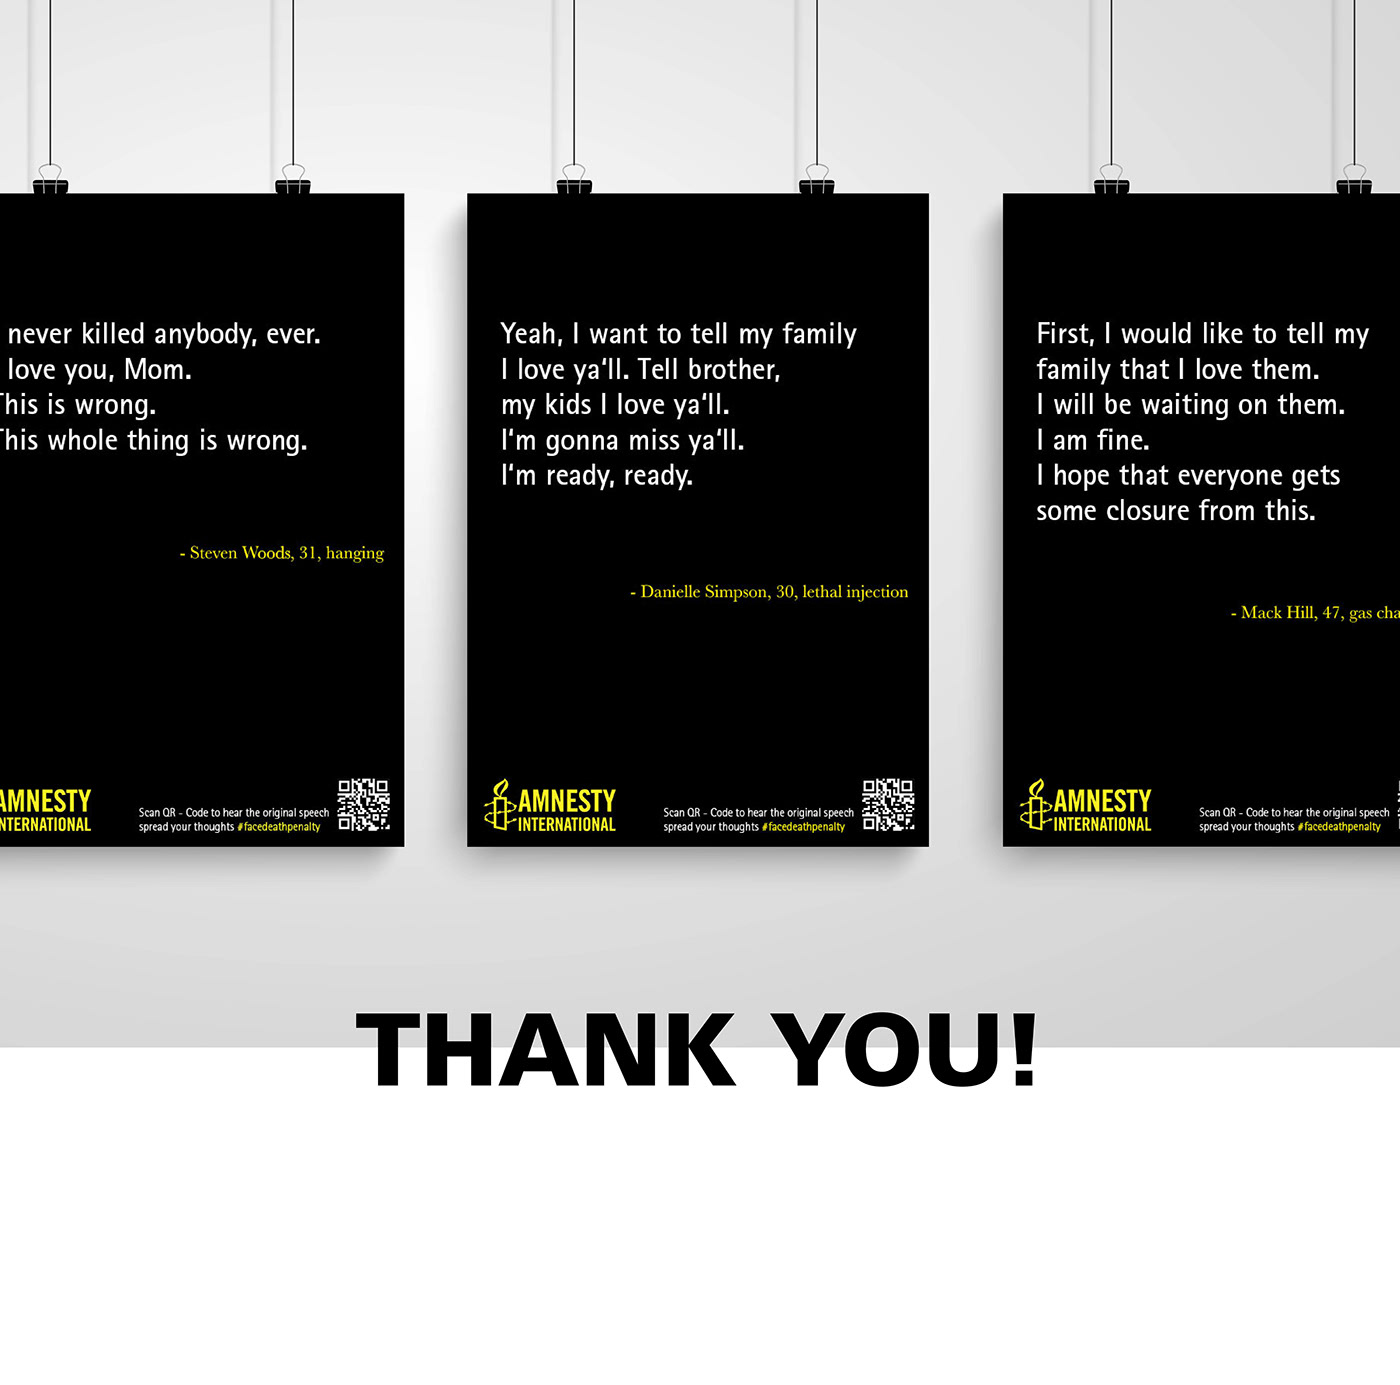 death penalty campaign amnesty International Schools Project Original Quotes